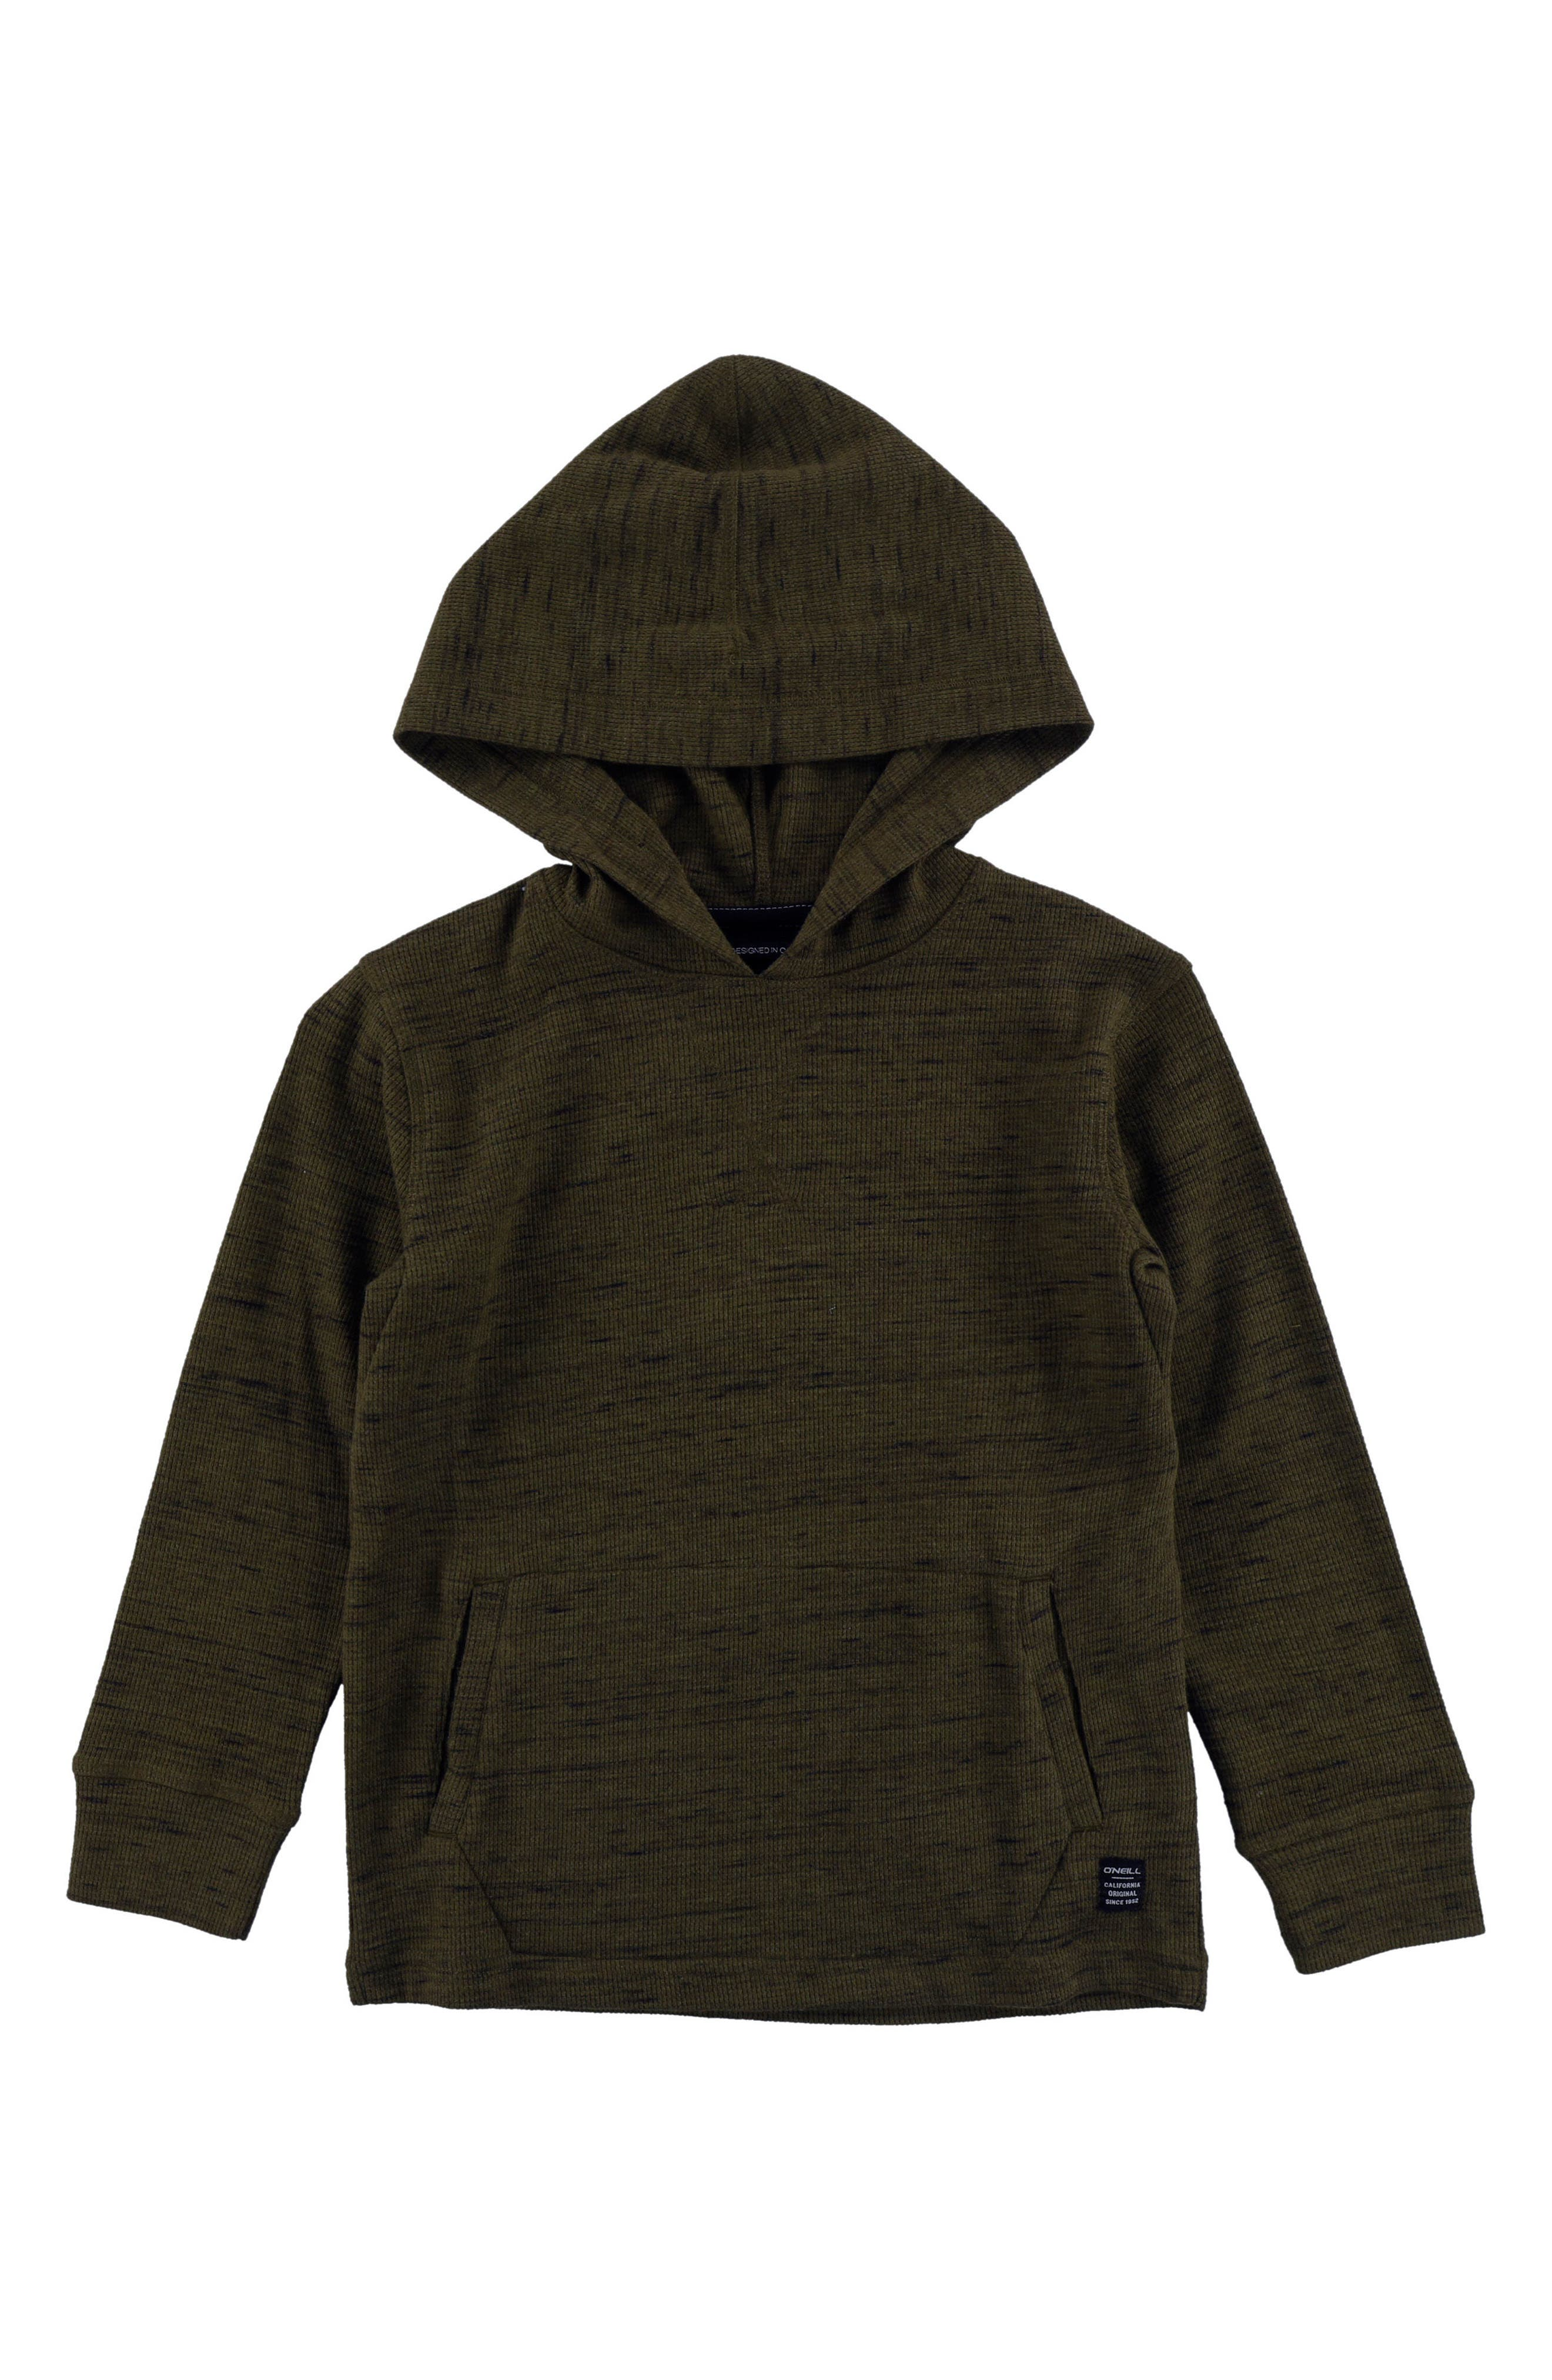 Alternate Image 1 Selected - O'Neill Boldin Thermal Pullover Hoodie (Toddler Boys, Little Boys & Big Boys)